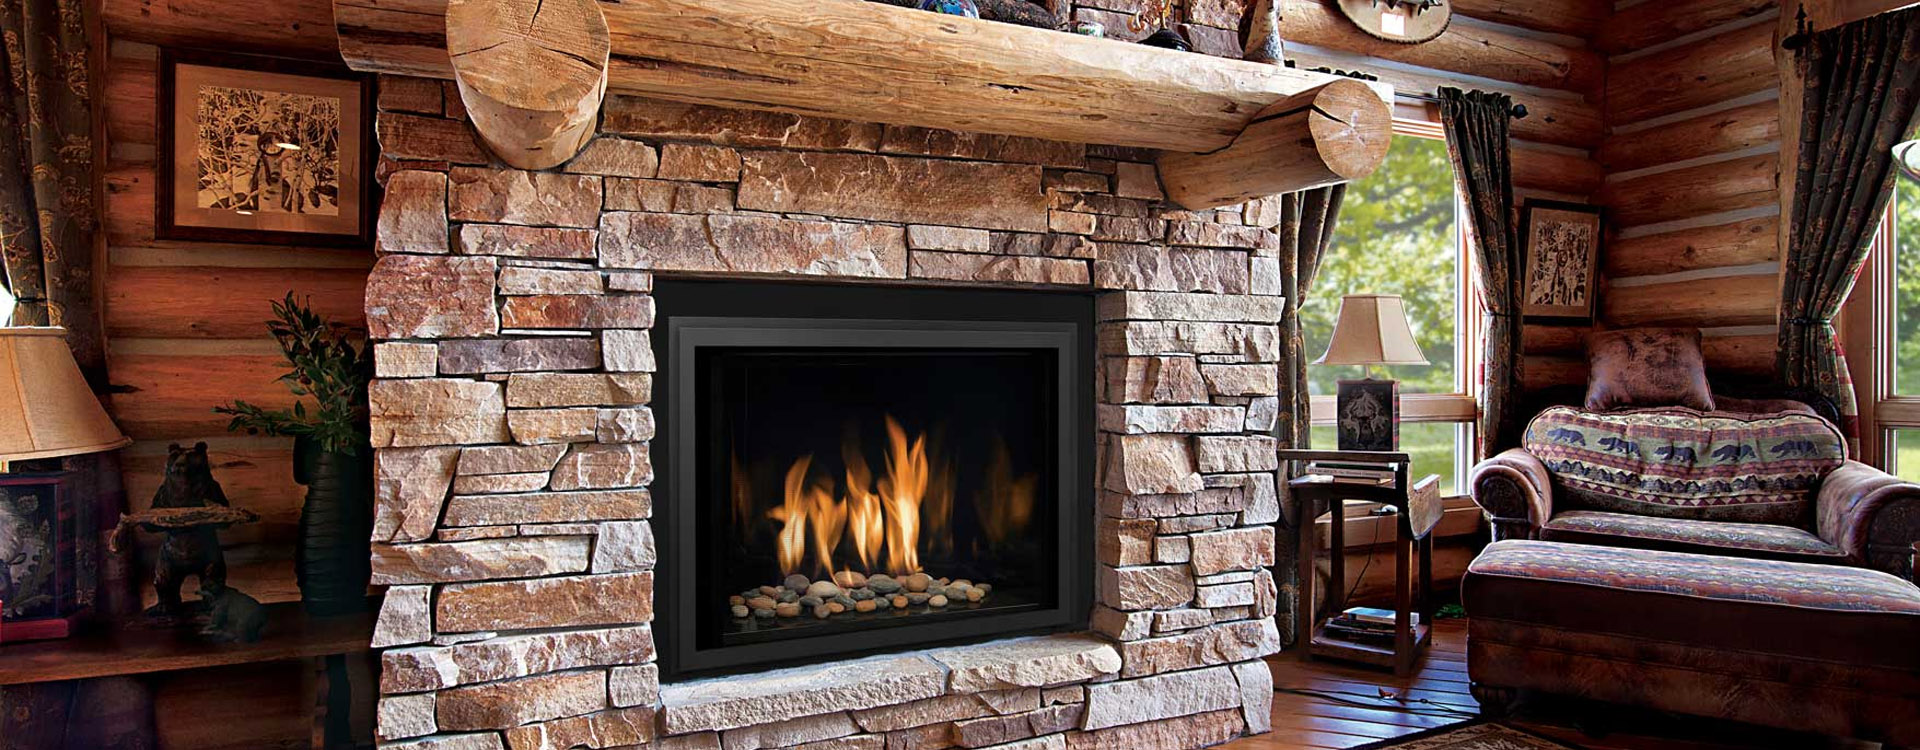 Stone Fireplace Insert - Home Design